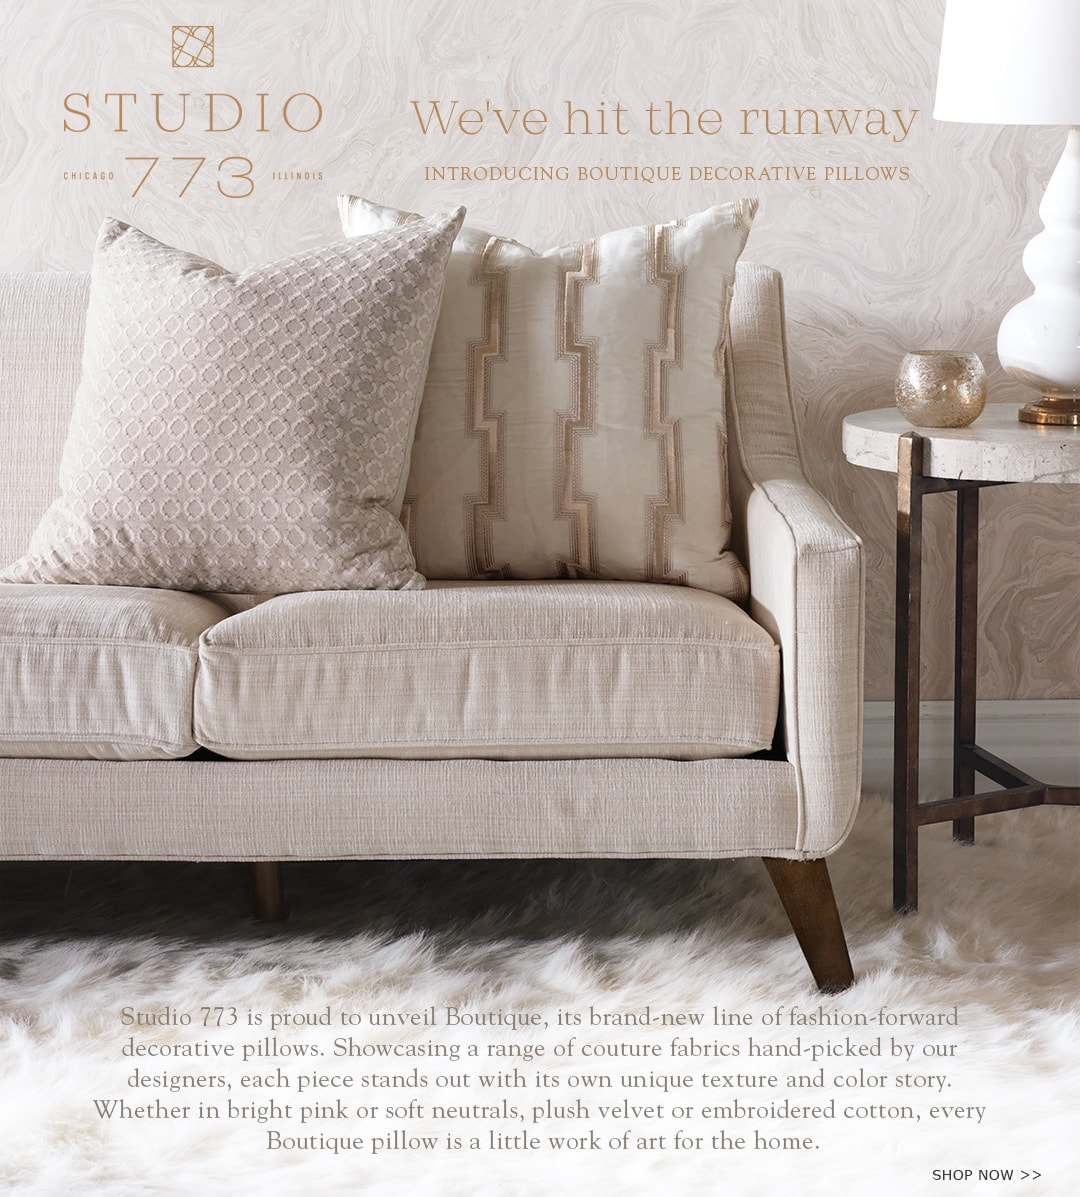 Studio 773 - We've hit the runway Introducing boutique decorative pillows